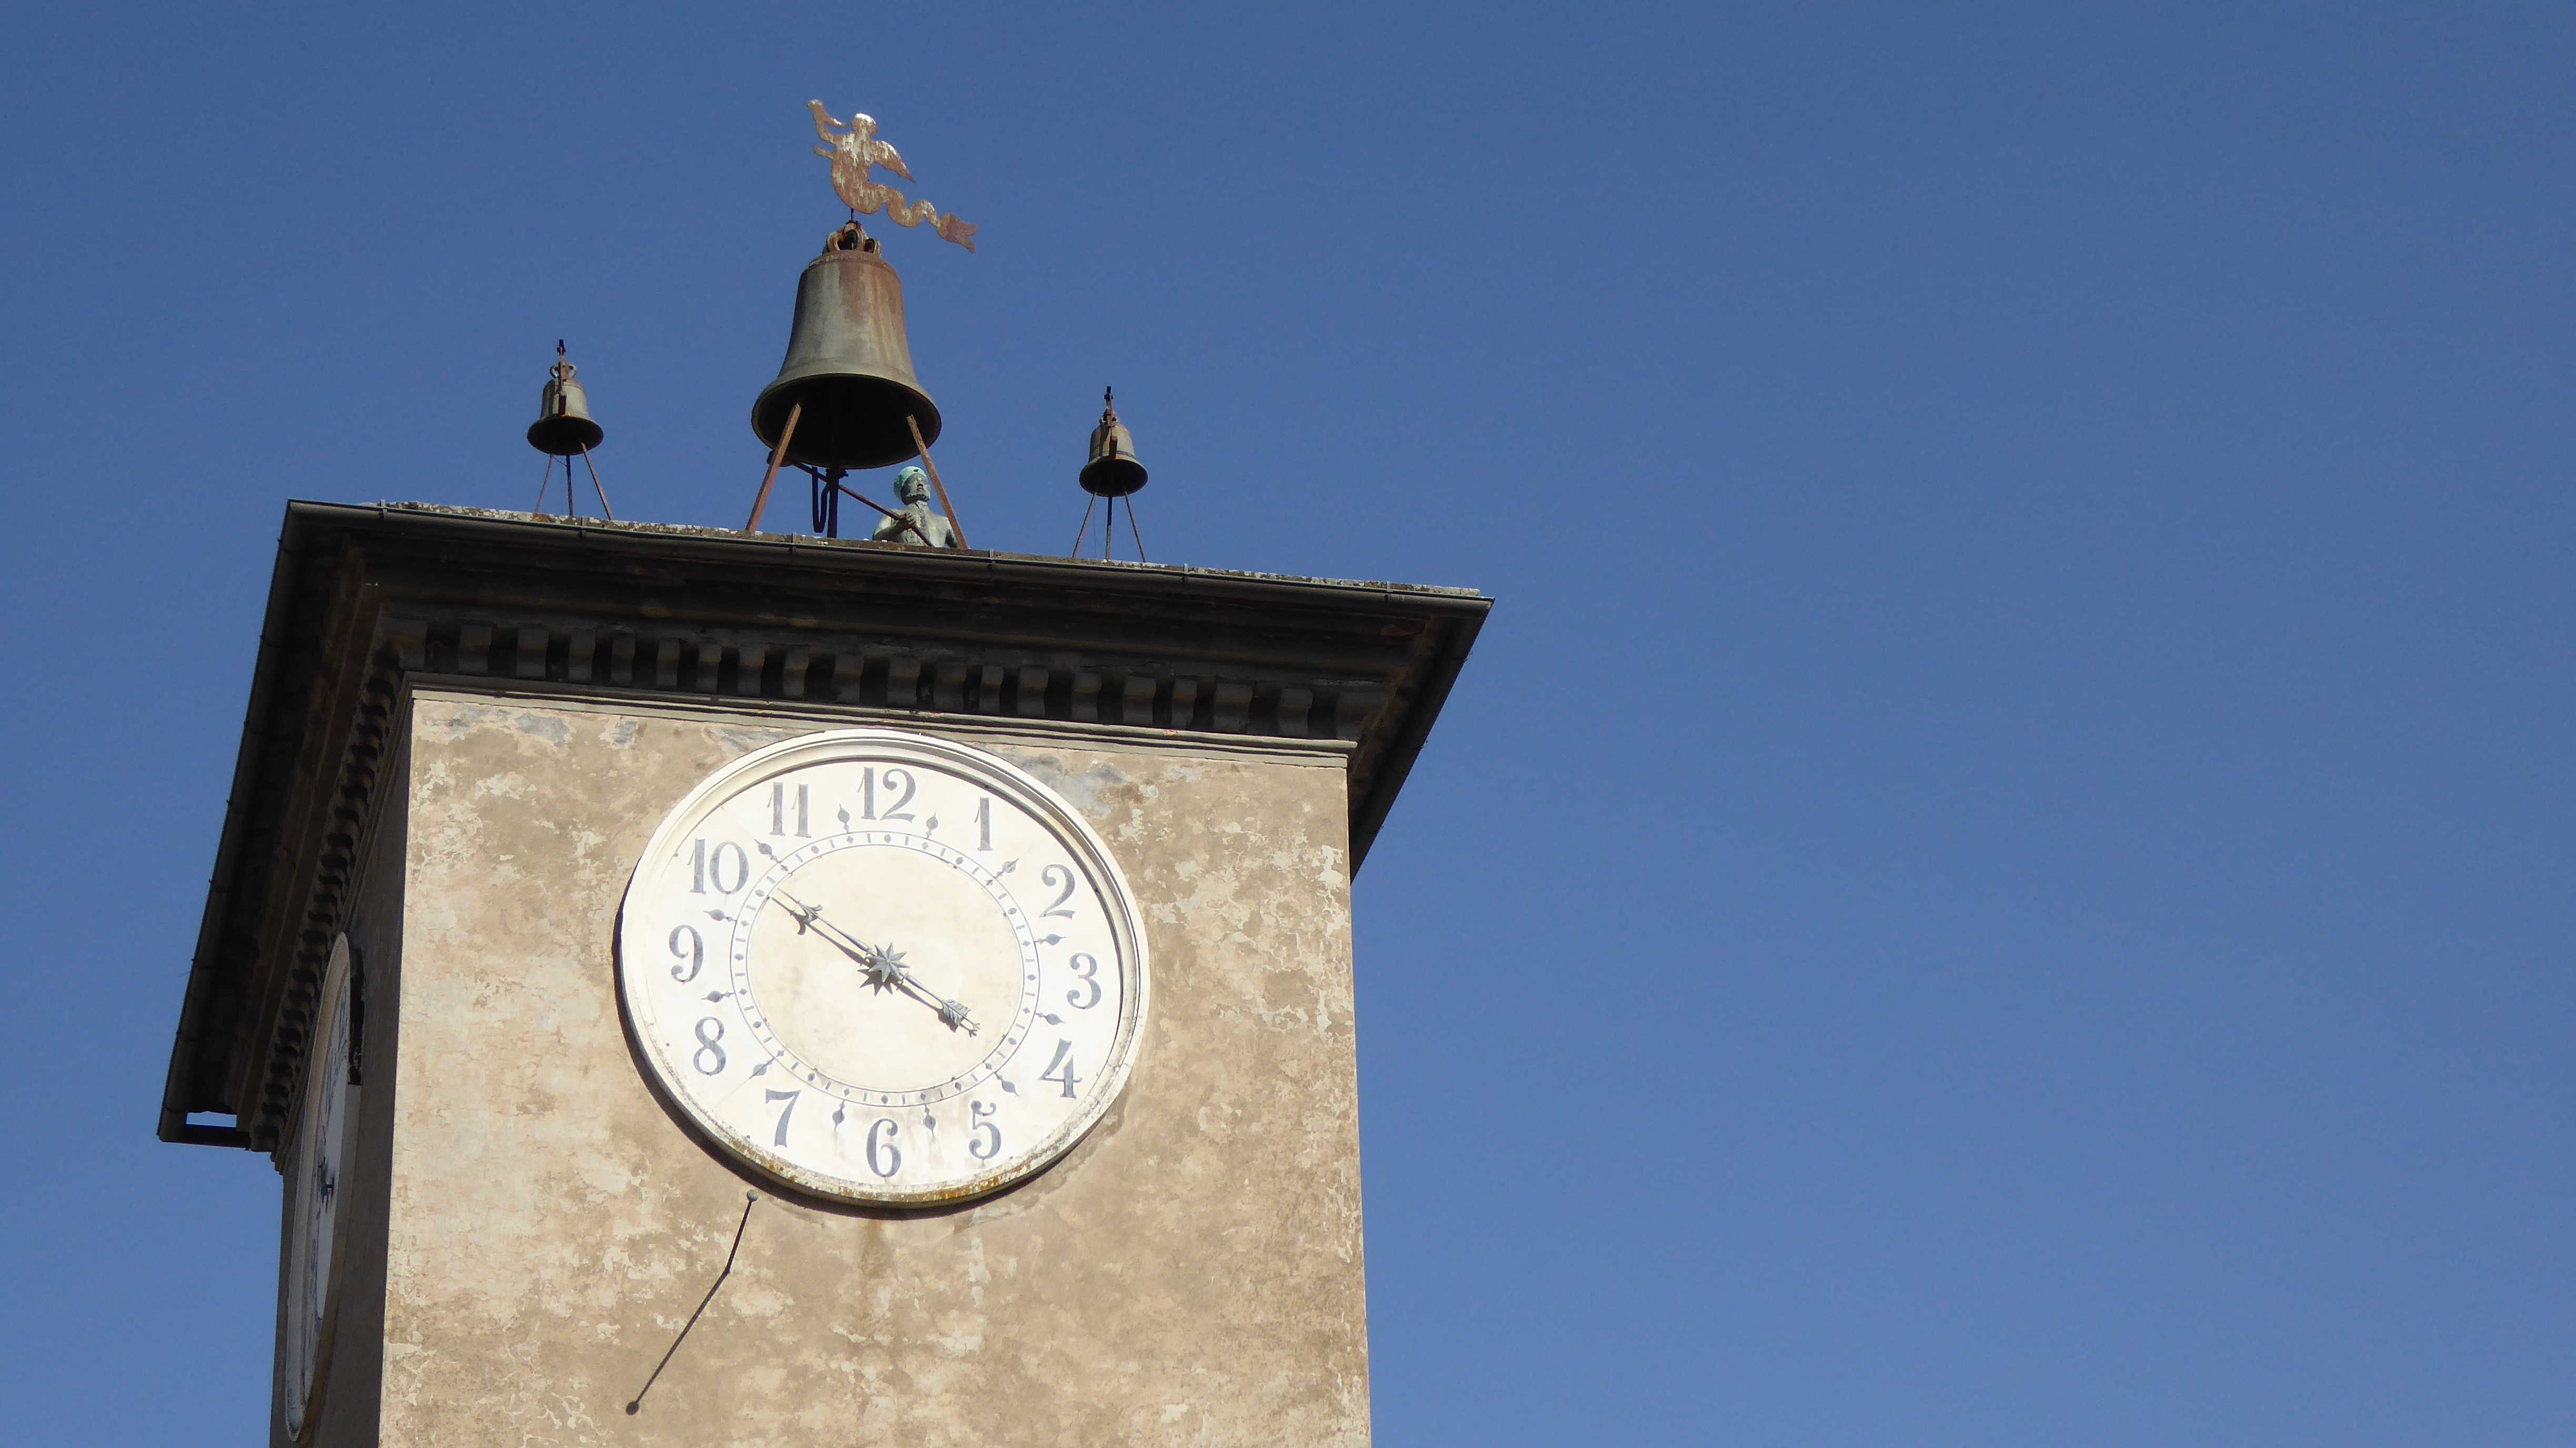 Orvieto's clock tower